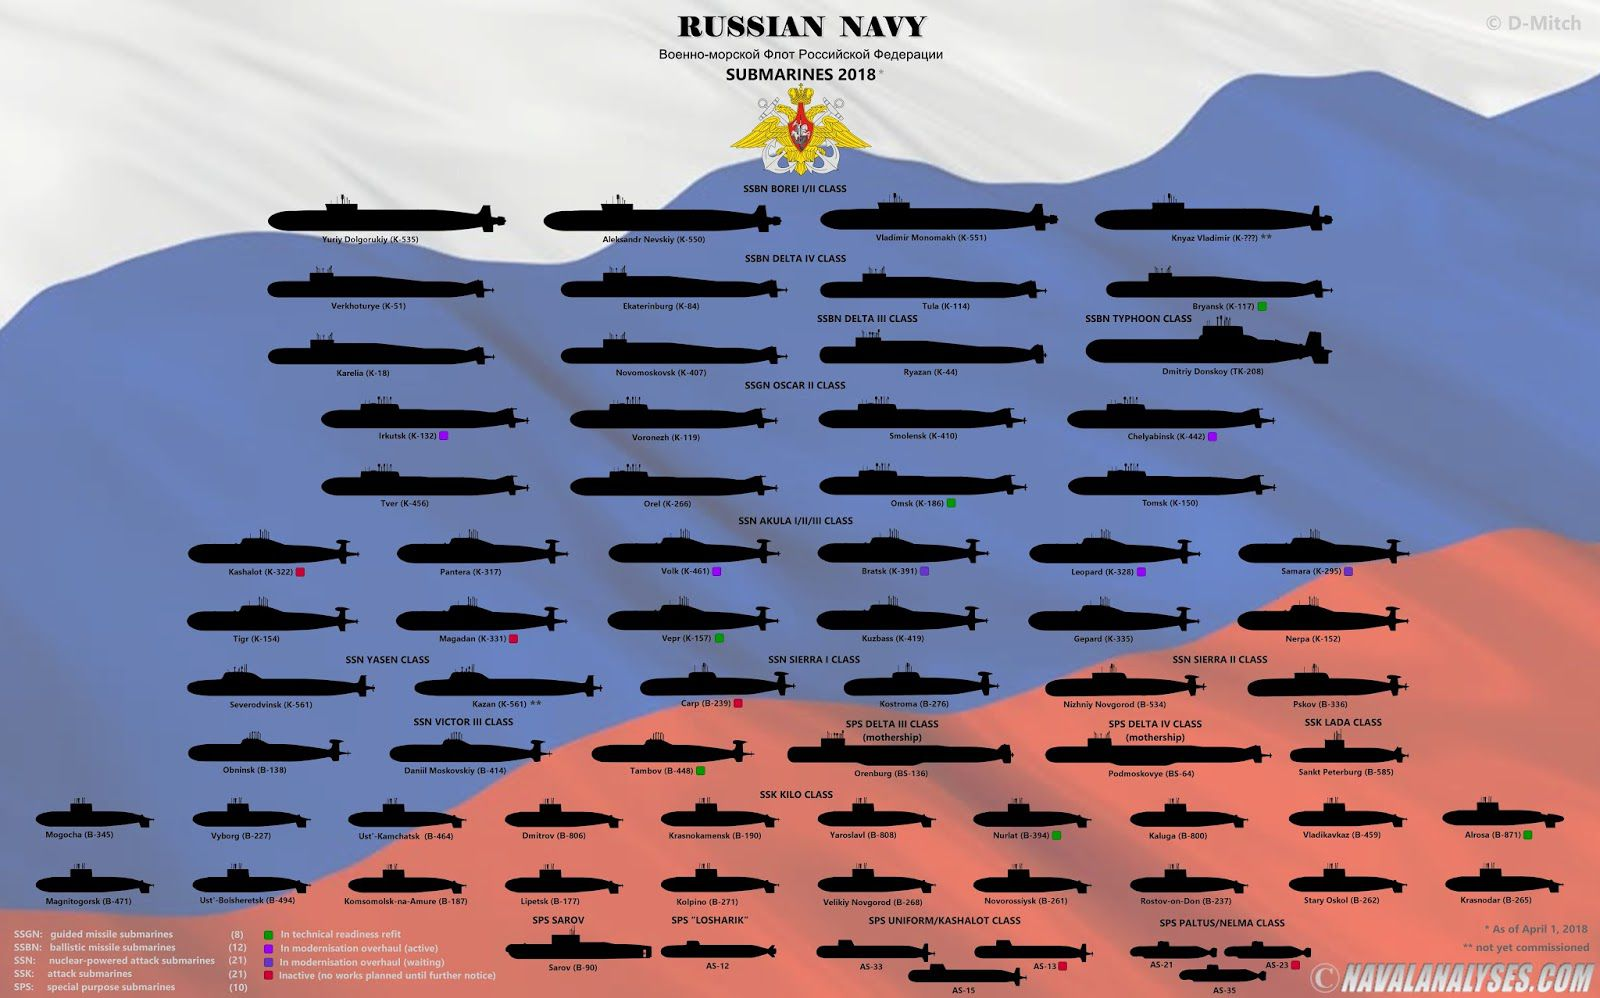 russian-navy-subs-2018-1524159225